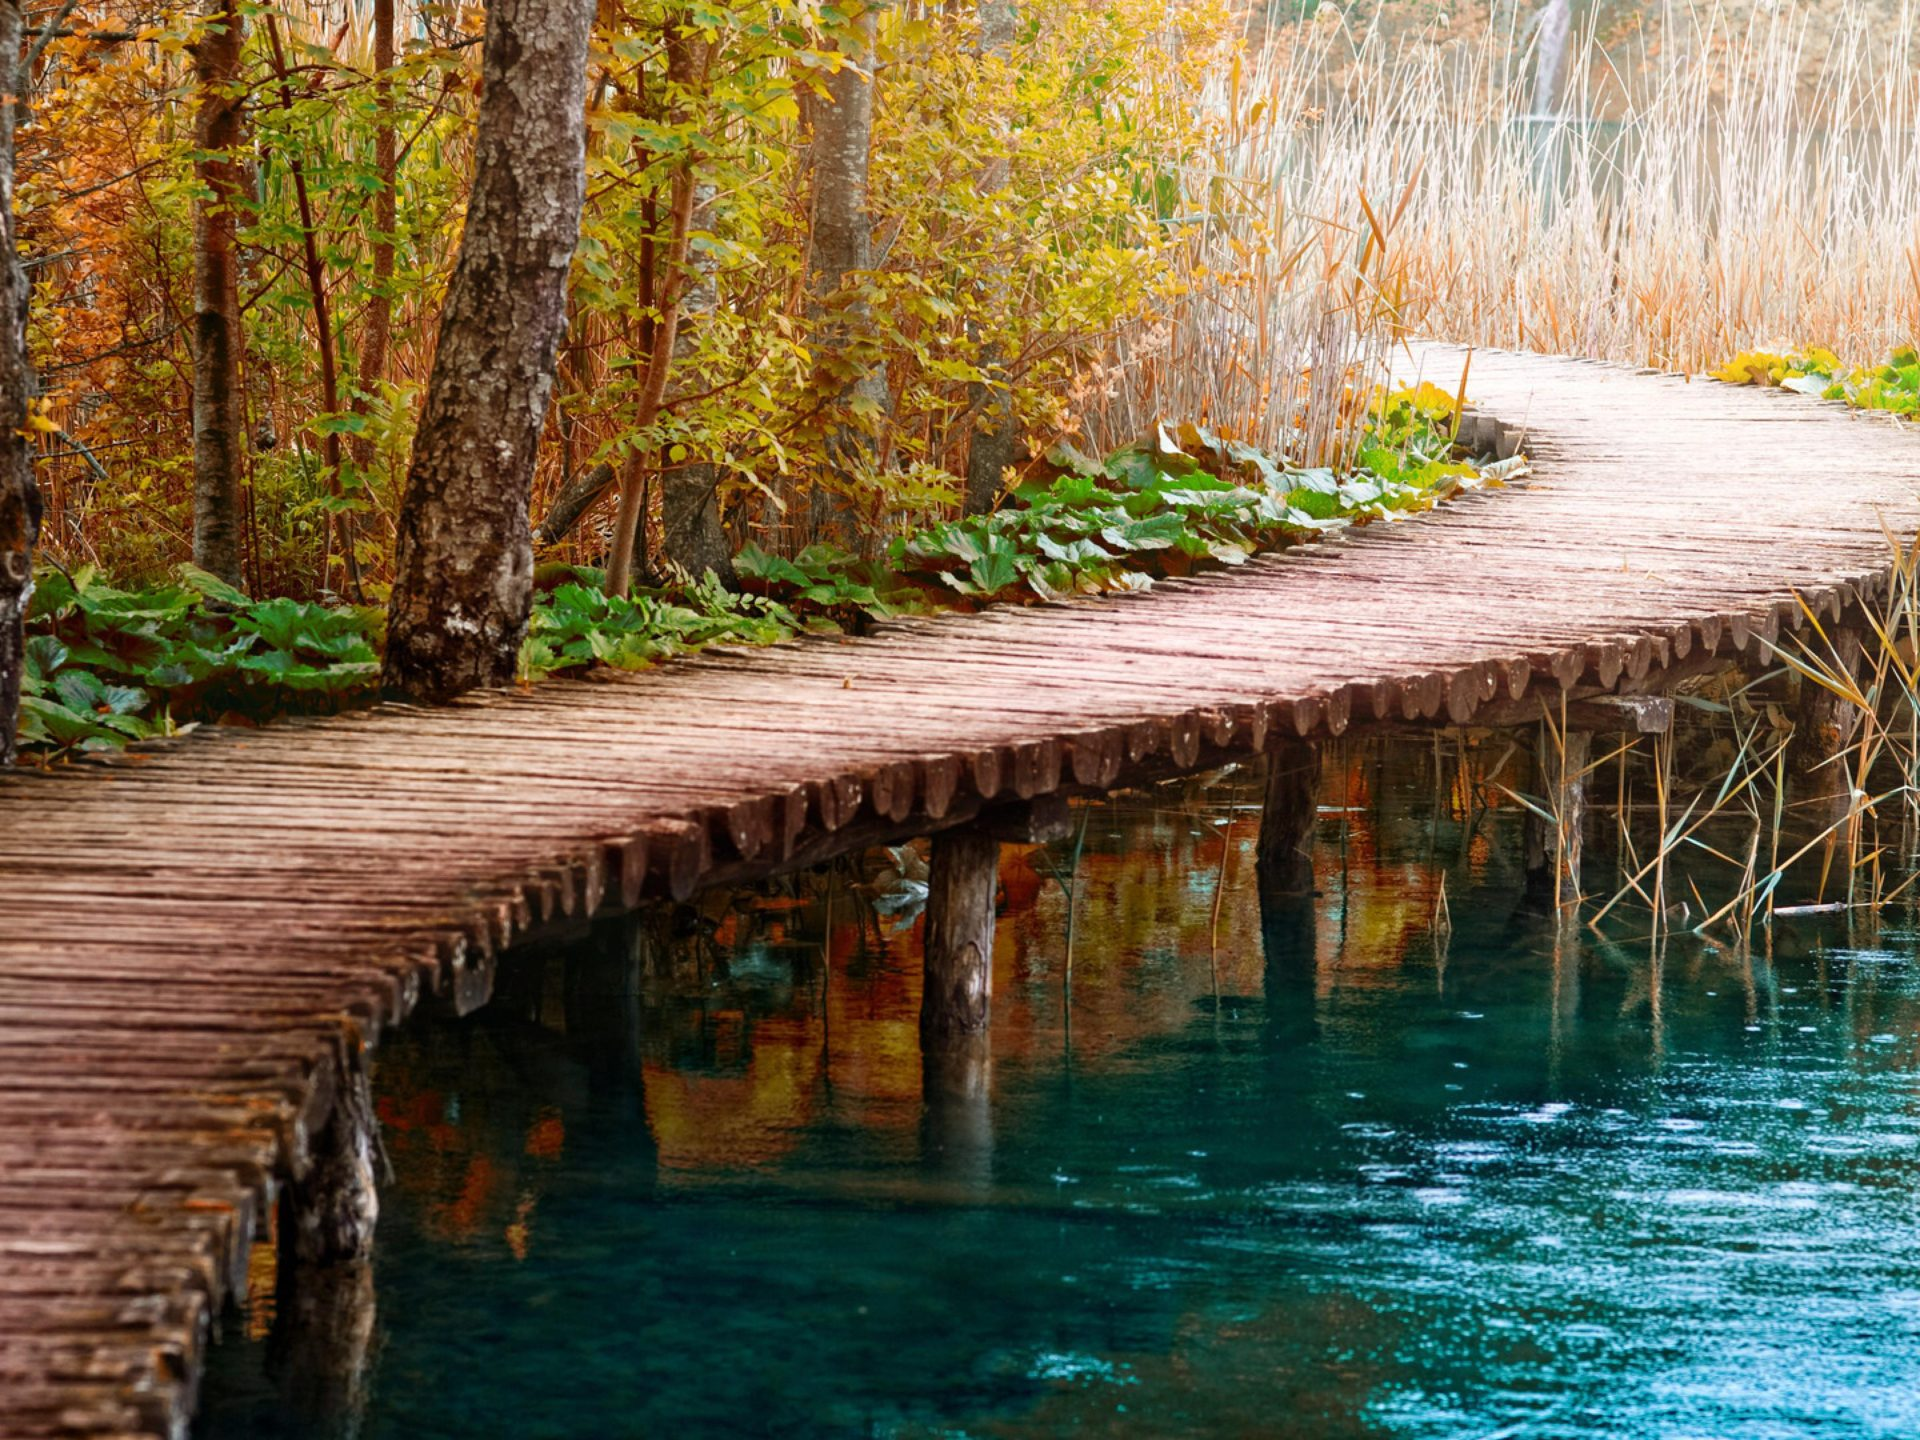 Hd Batman Iphone Wallpaper Autumn Background River Wooden Path Bridge Cane Reeds Dry